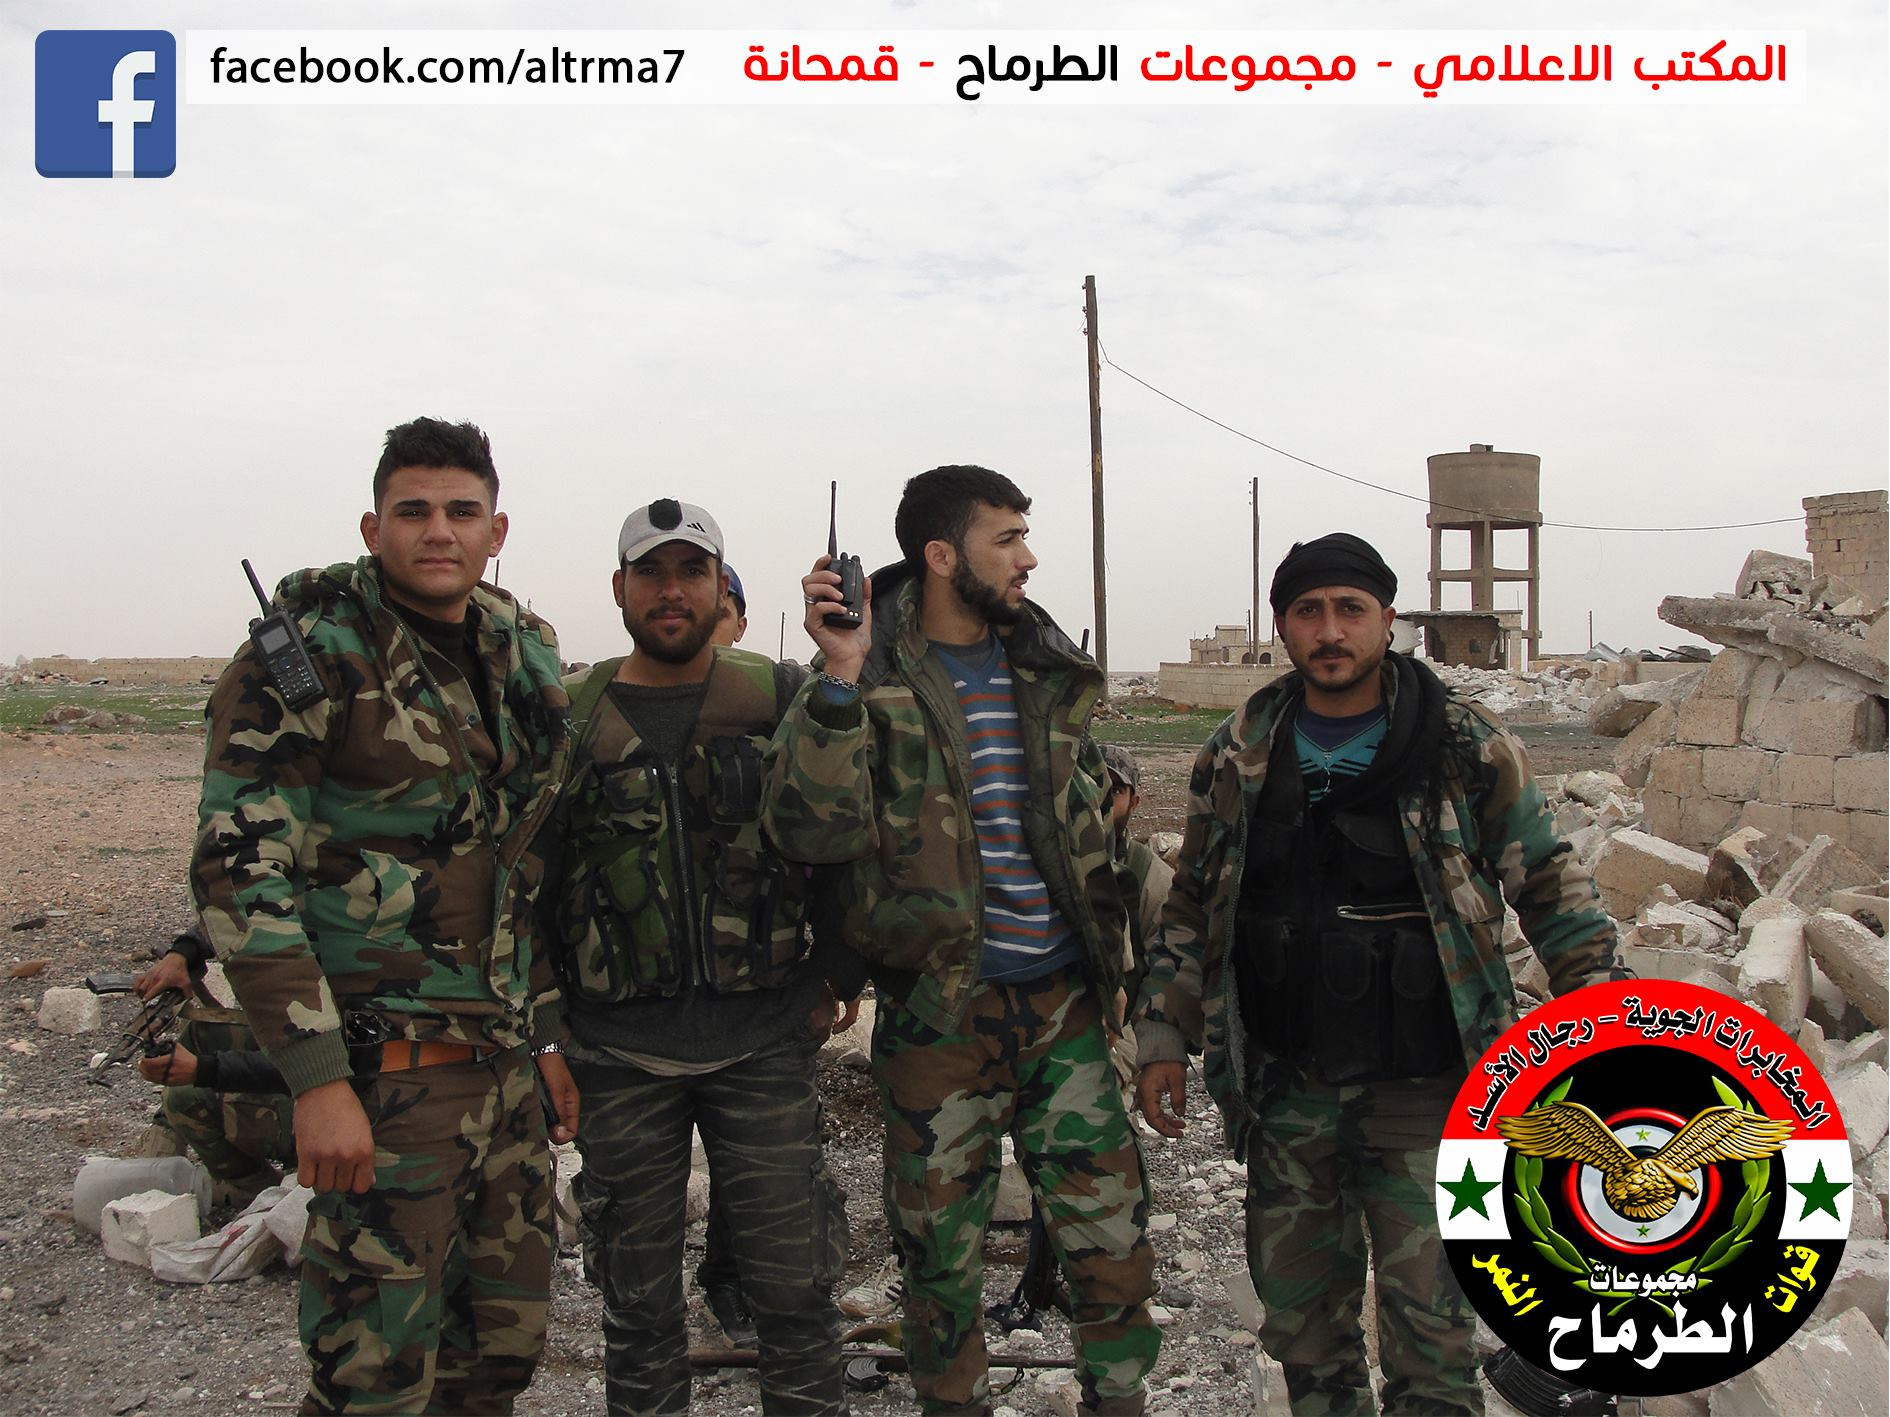 Syrian Army Captures Strategic Village Of Abu Dali, Several Other Villages In Southern Idlib (Photos)